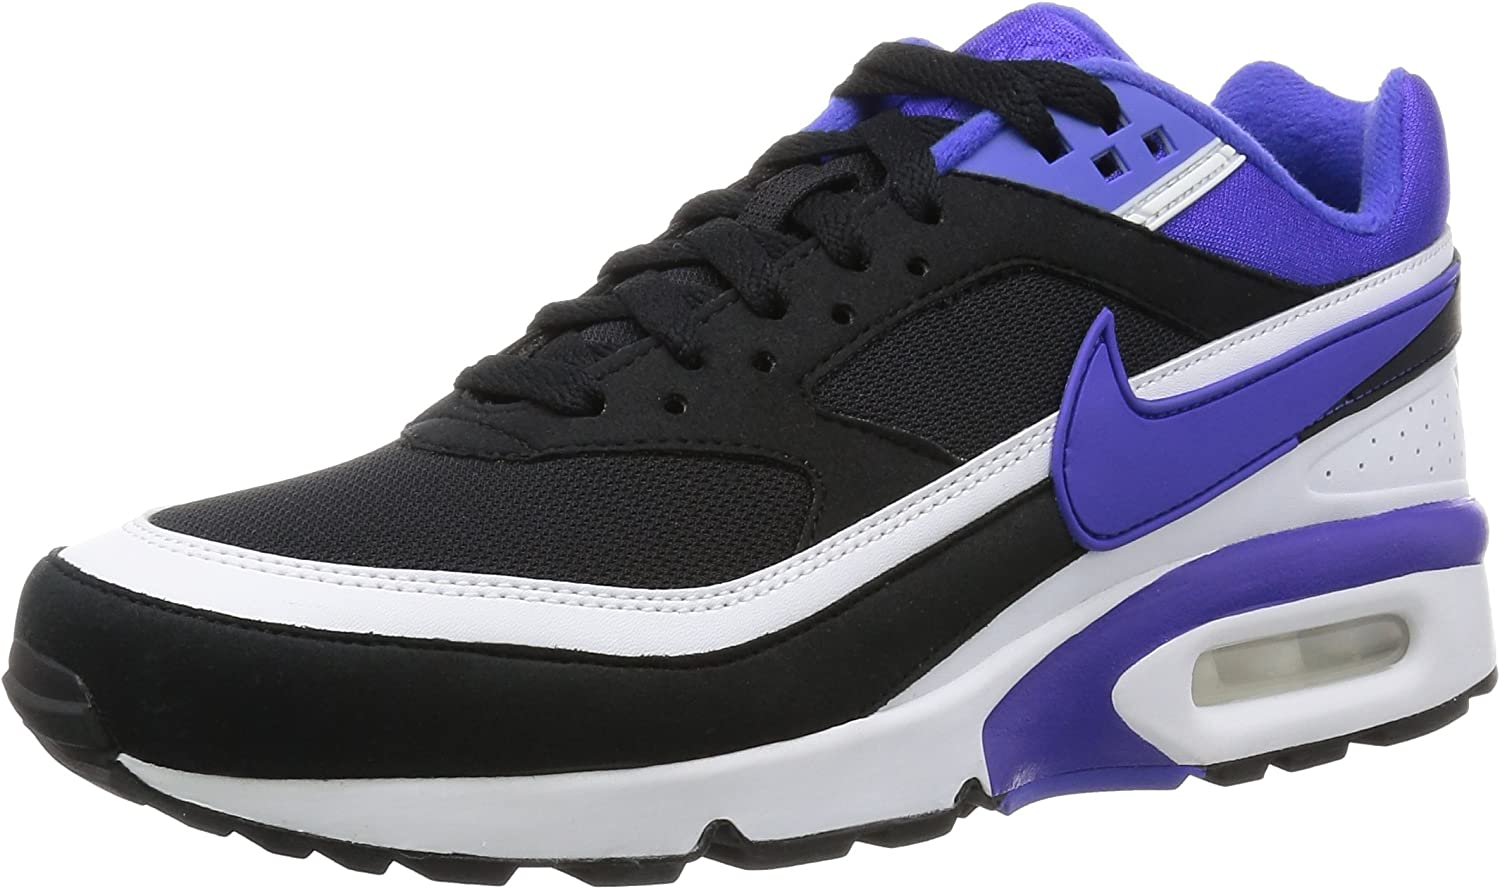 NIKE Air Max Bw Og Mens